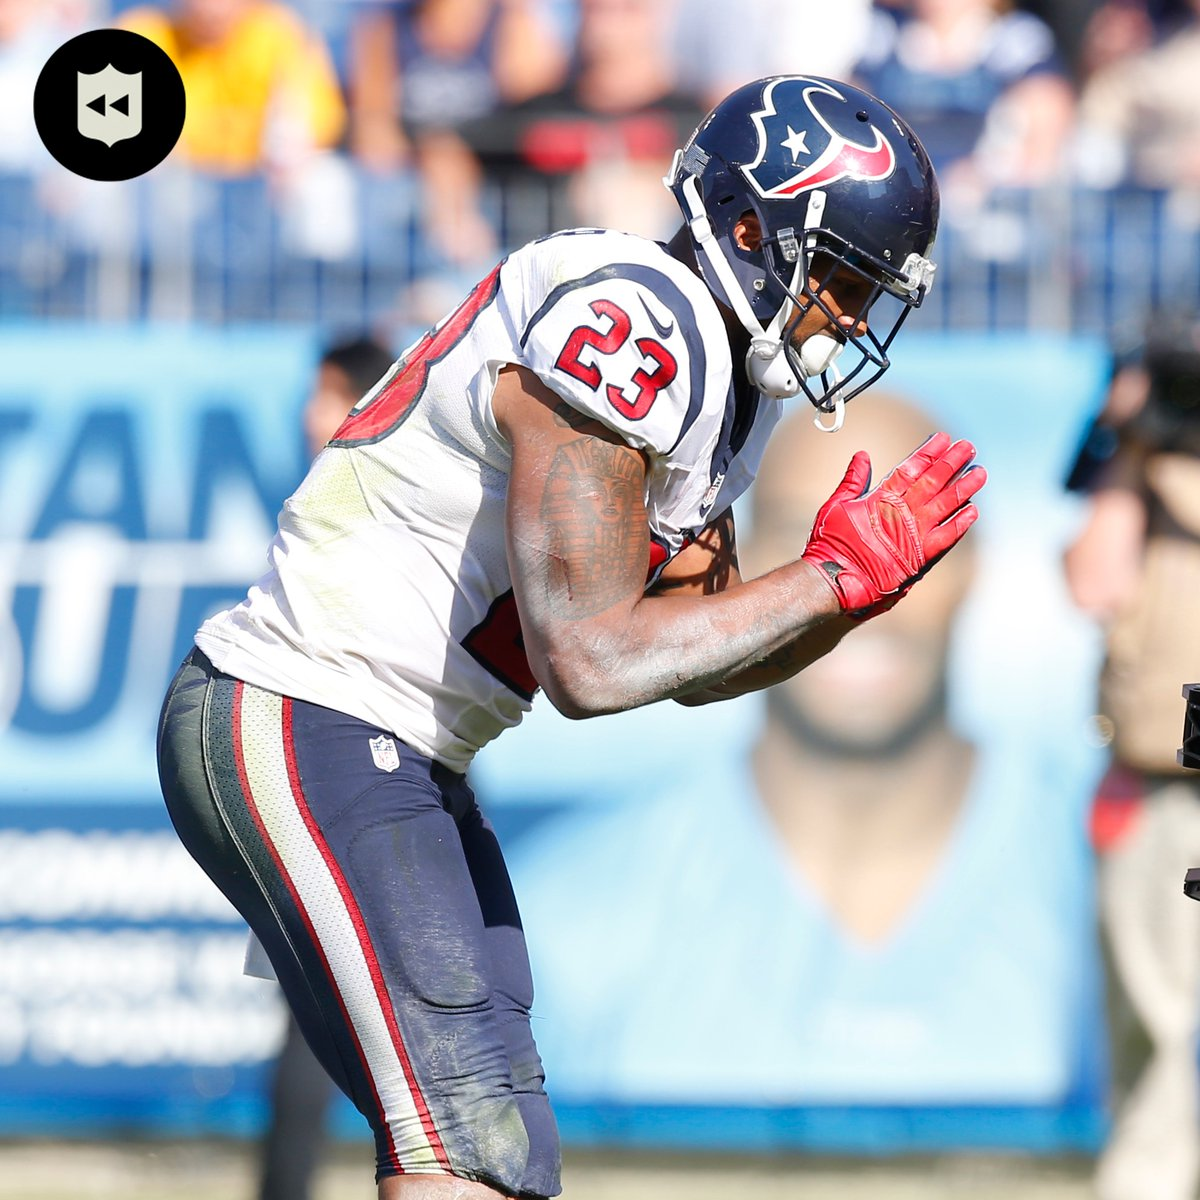 .@ArianFoster was a problem for defenses in the early 2010s. From 2010-14, he totaled: 🙏 6,052 rushing yards 🙏 1,948 receiving yards 🙏 62 total touchdowns